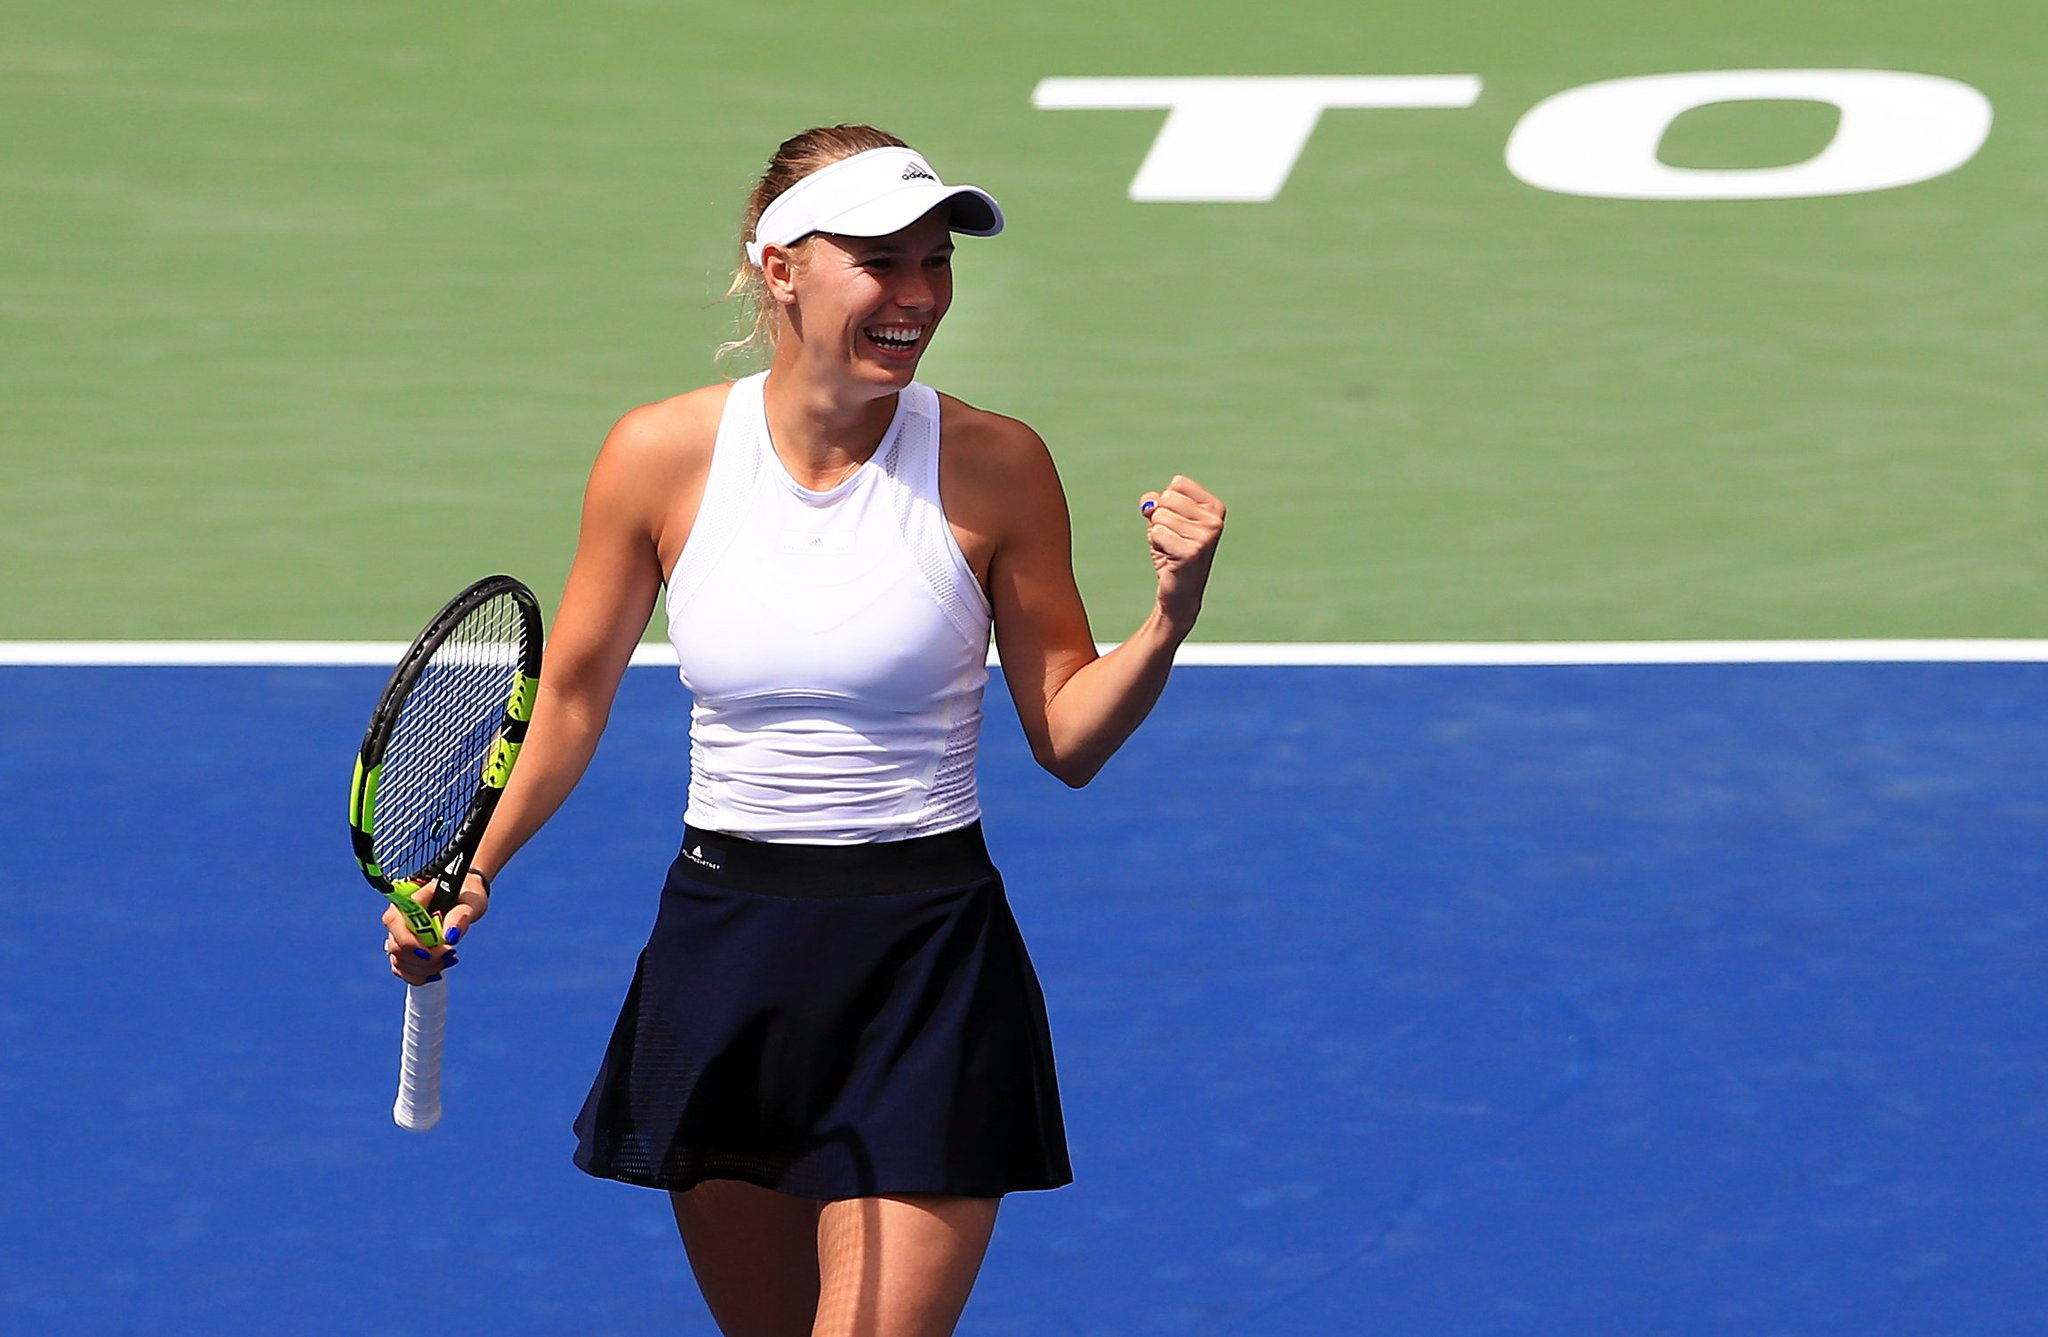 .@CaroWozniacki reaches SIXTH final of 2017 at #RogersCup--> https://t.co/KwxXhHlLTx https://t.co/qNpuq80p5X